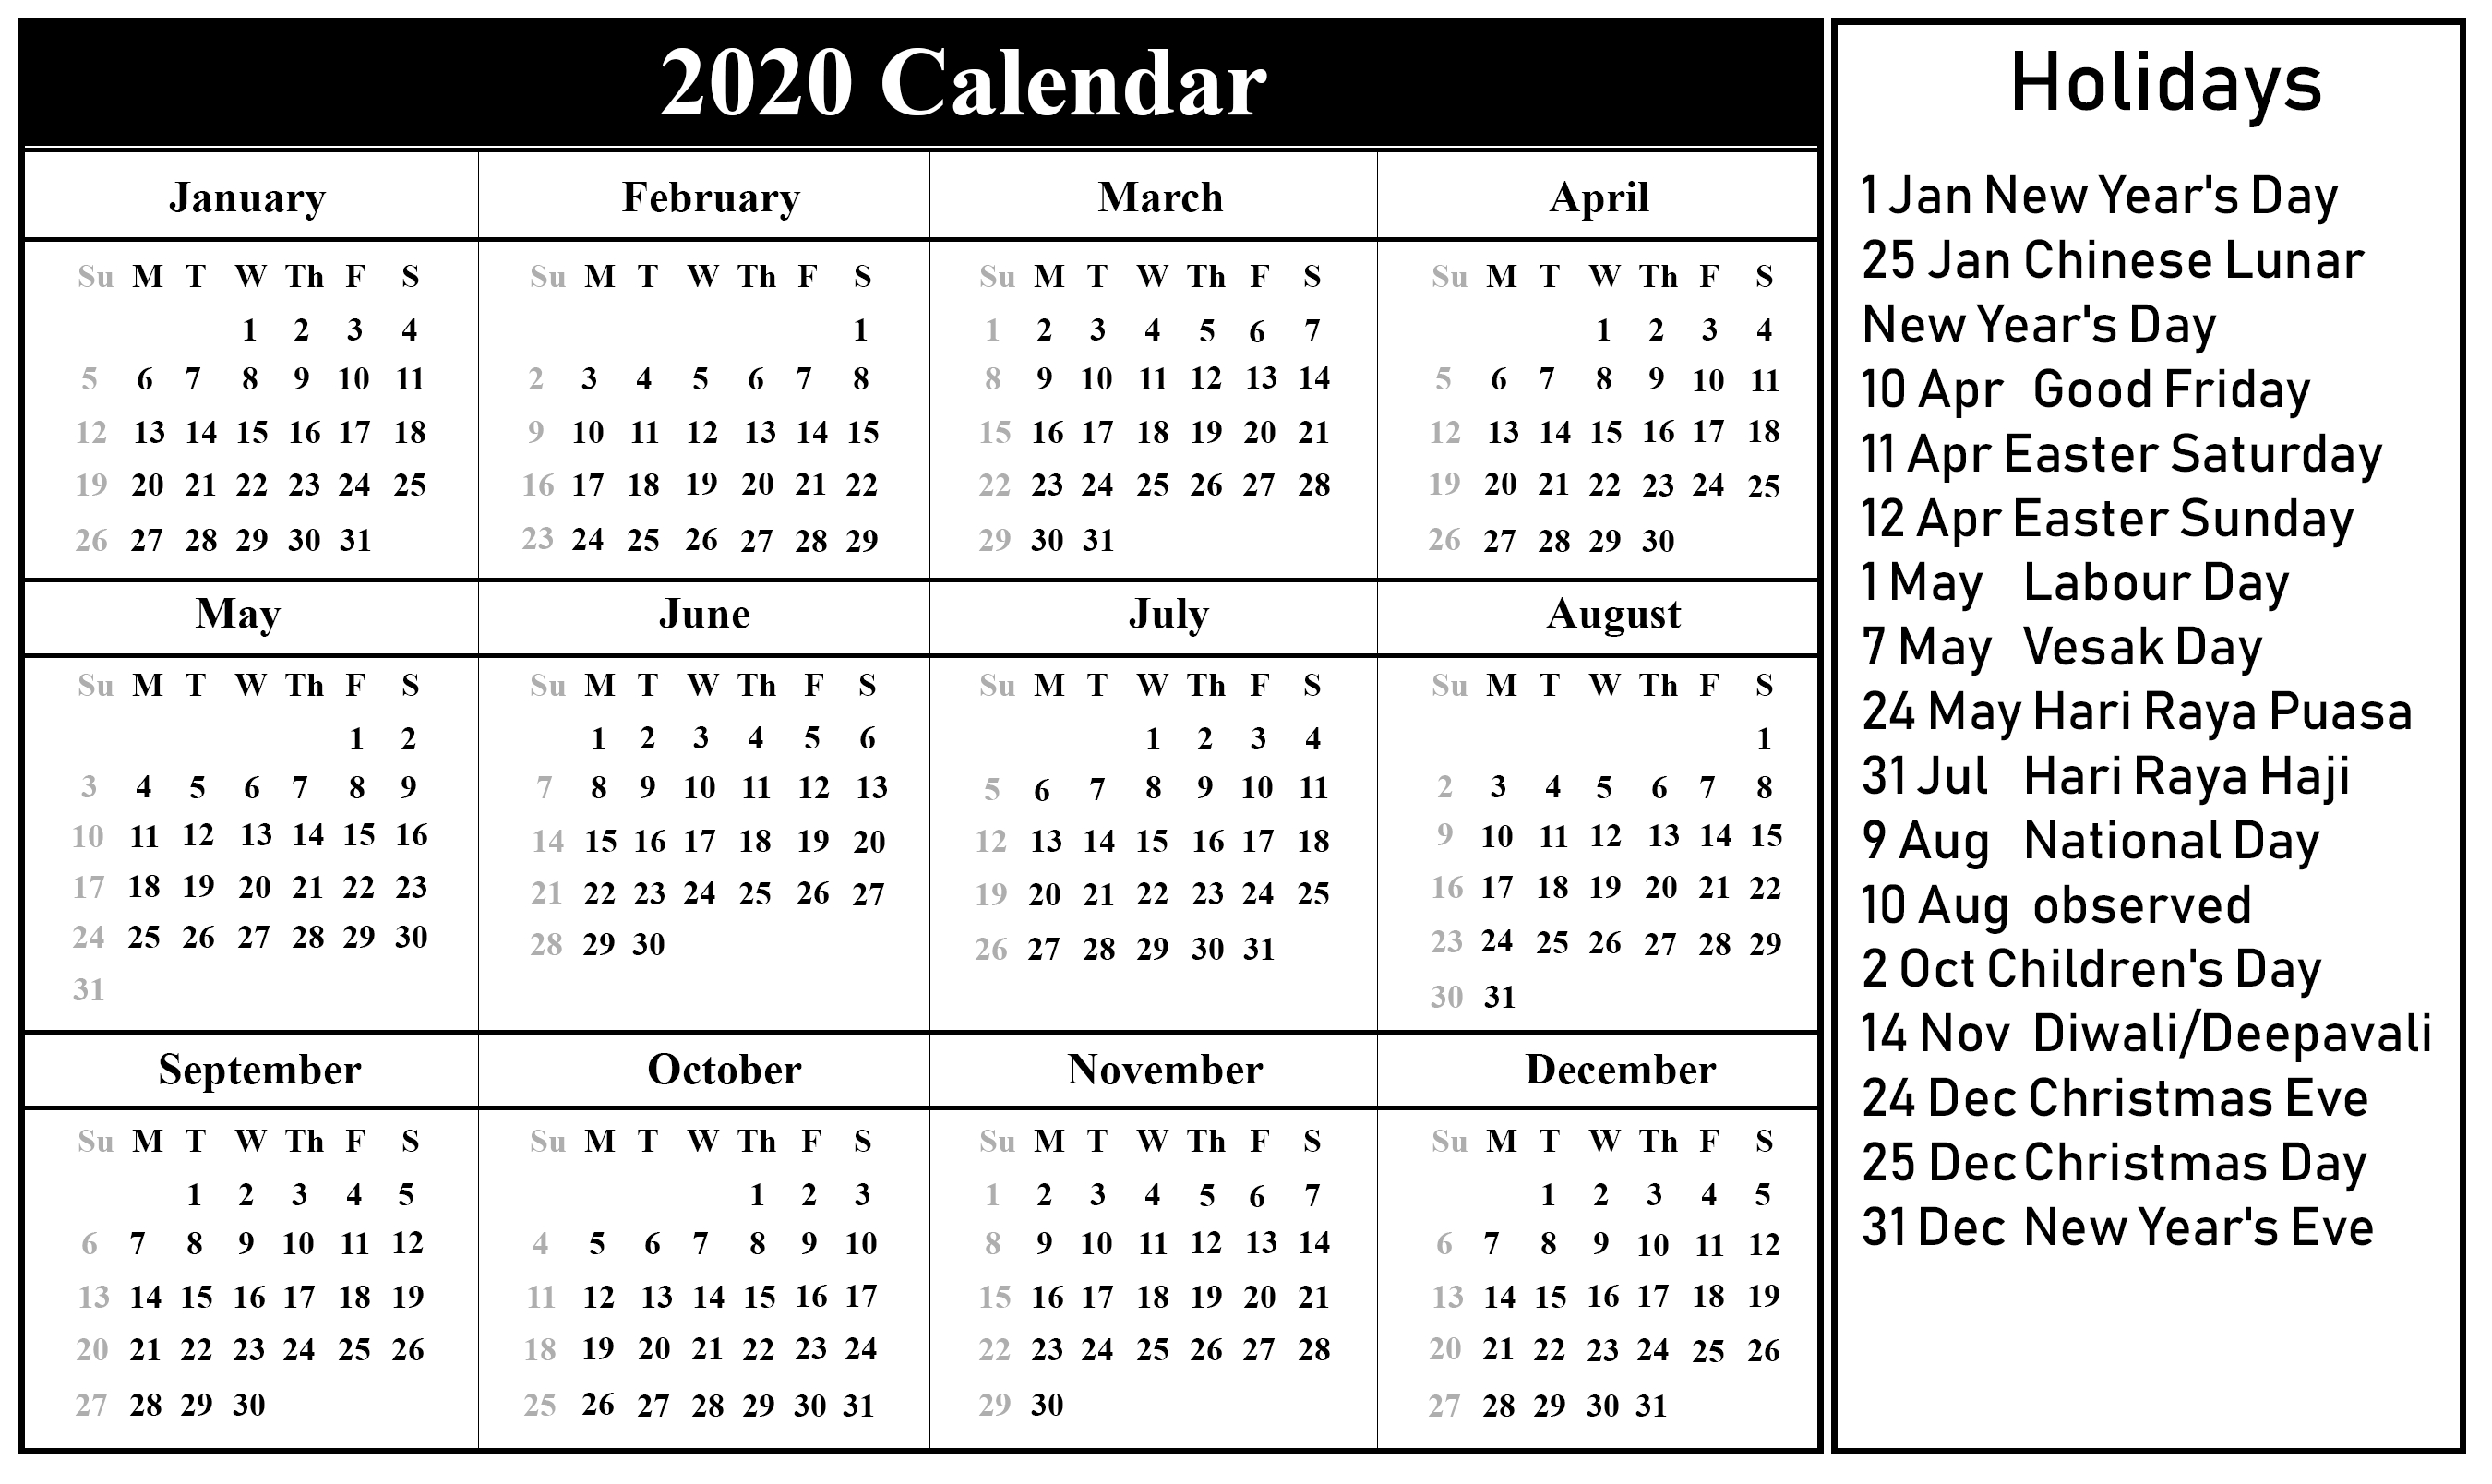 Printable 2020 Calendar With Holidays | Monthly Calendar intended for 2020 Yearly Calendar With Holidays Printable